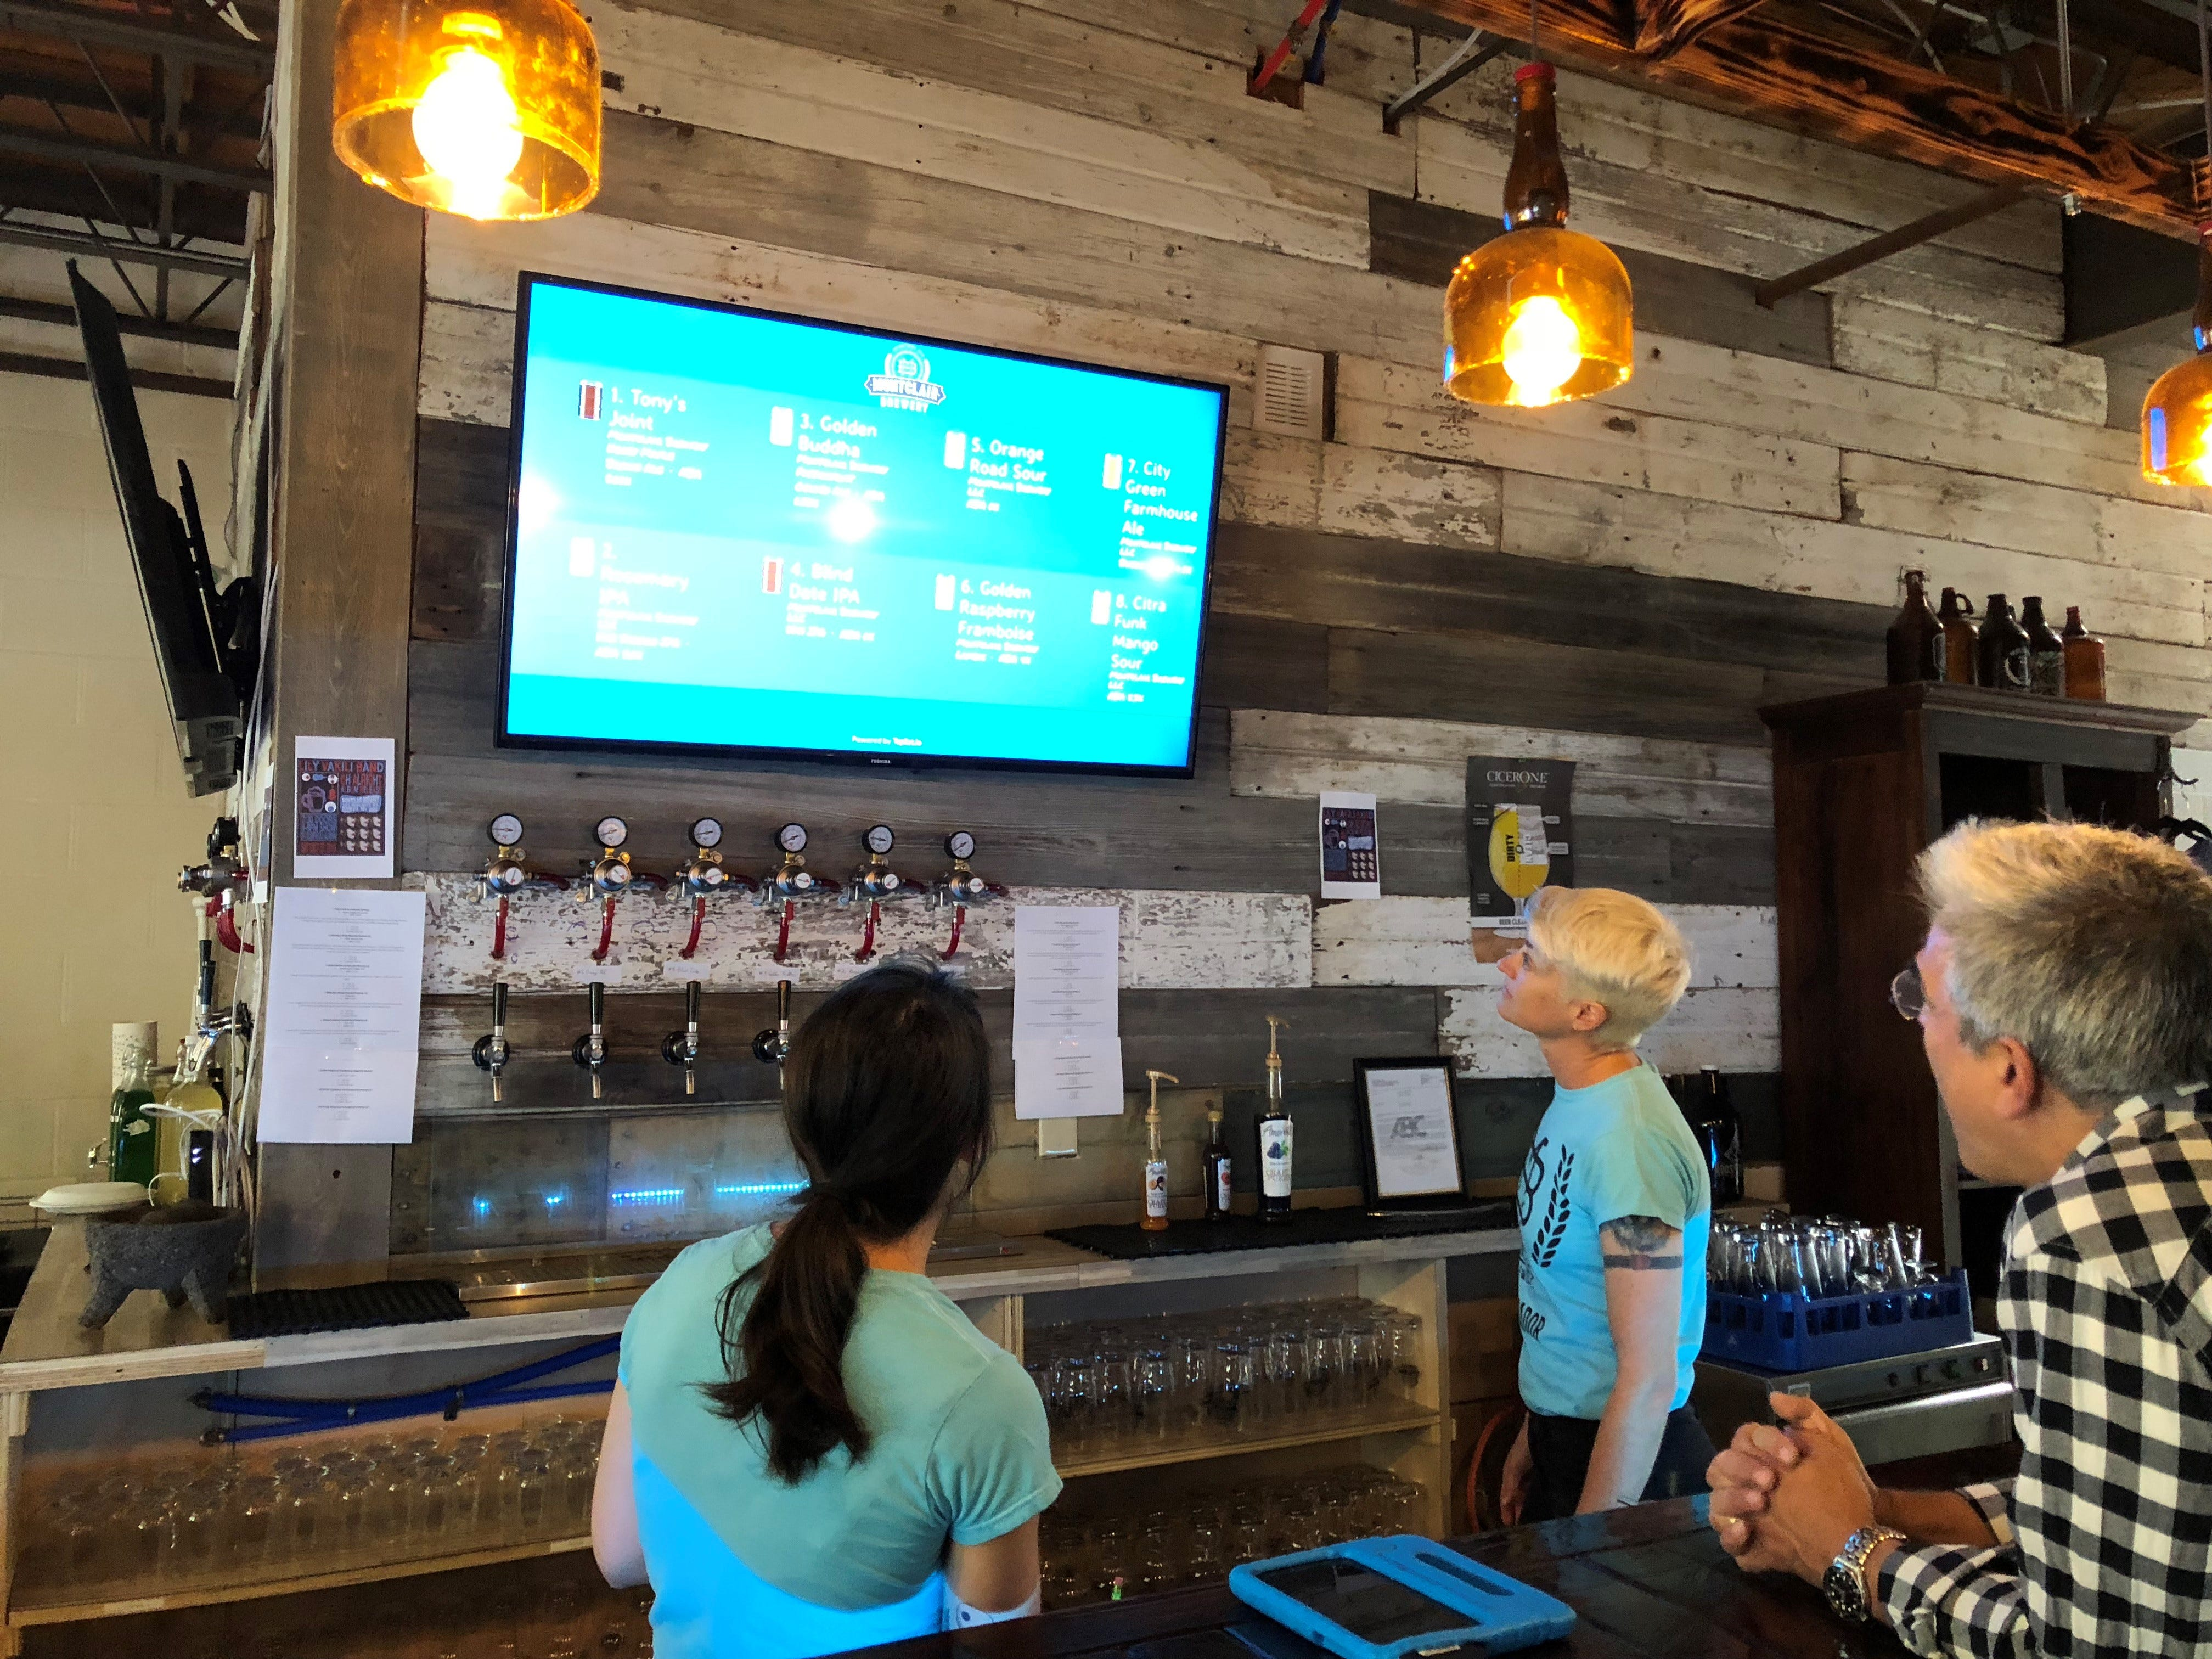 A screen displays the offerings on tap at Montclair Brewery.